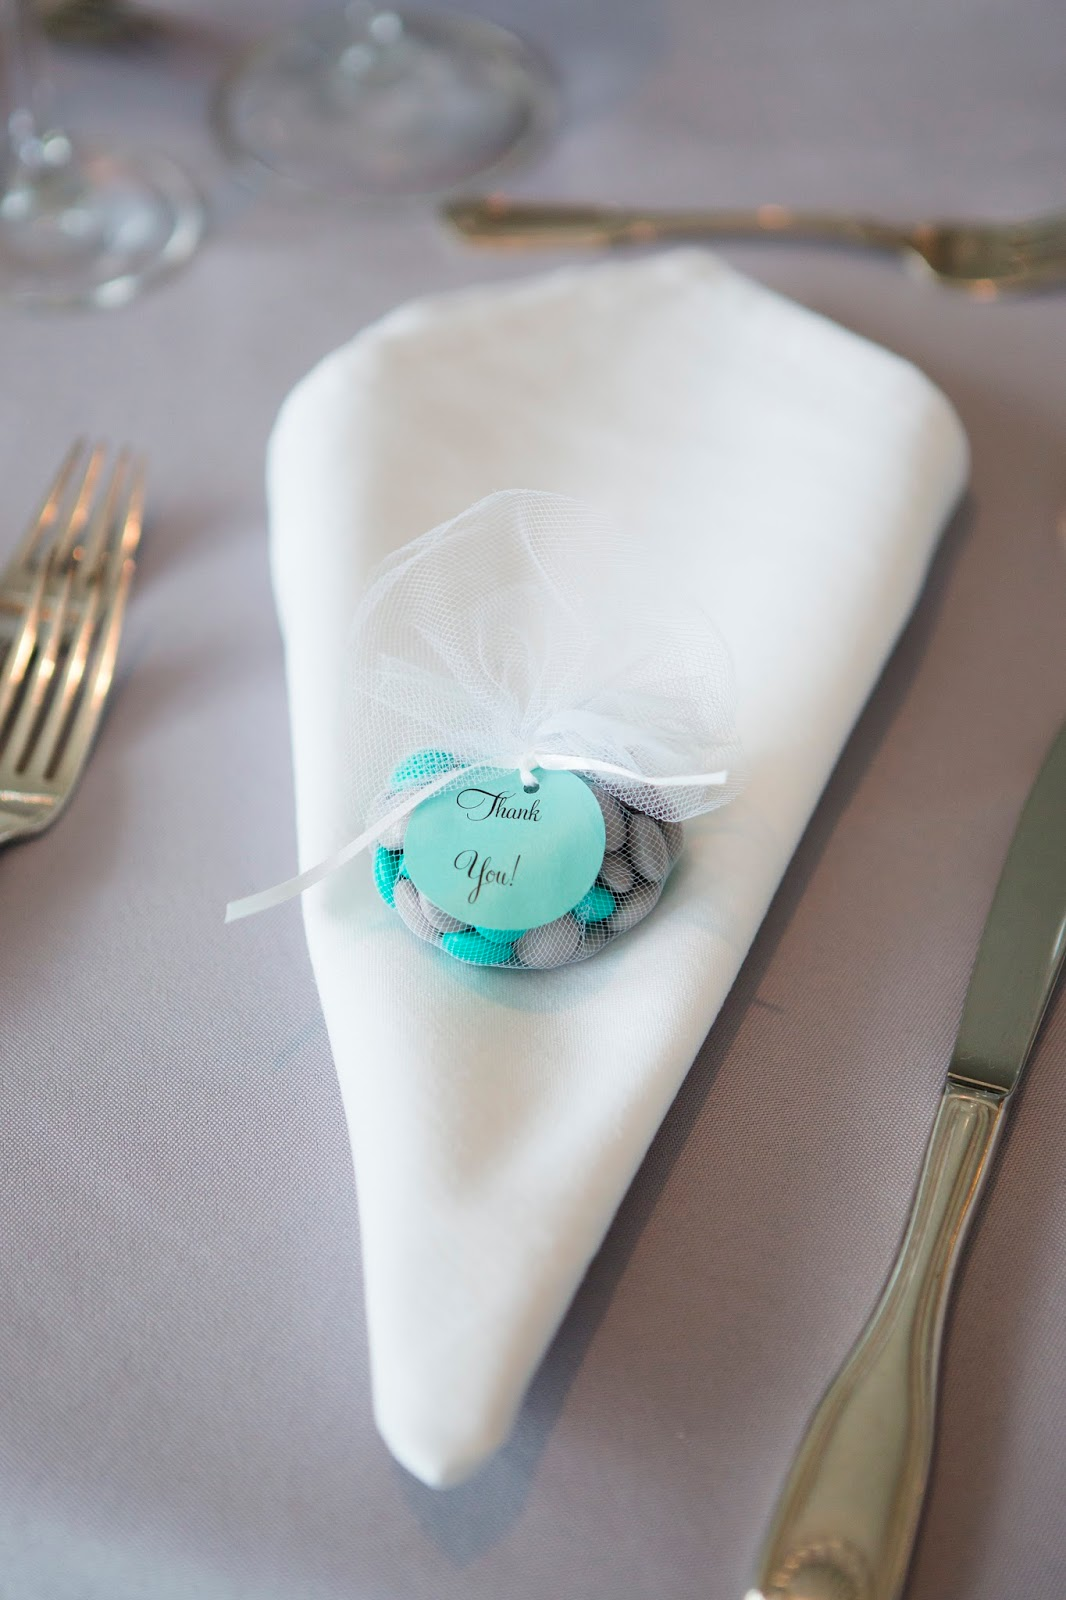 Wedding Wednesdsay- Favors with DIY Thank You tags | The Inspired Hive